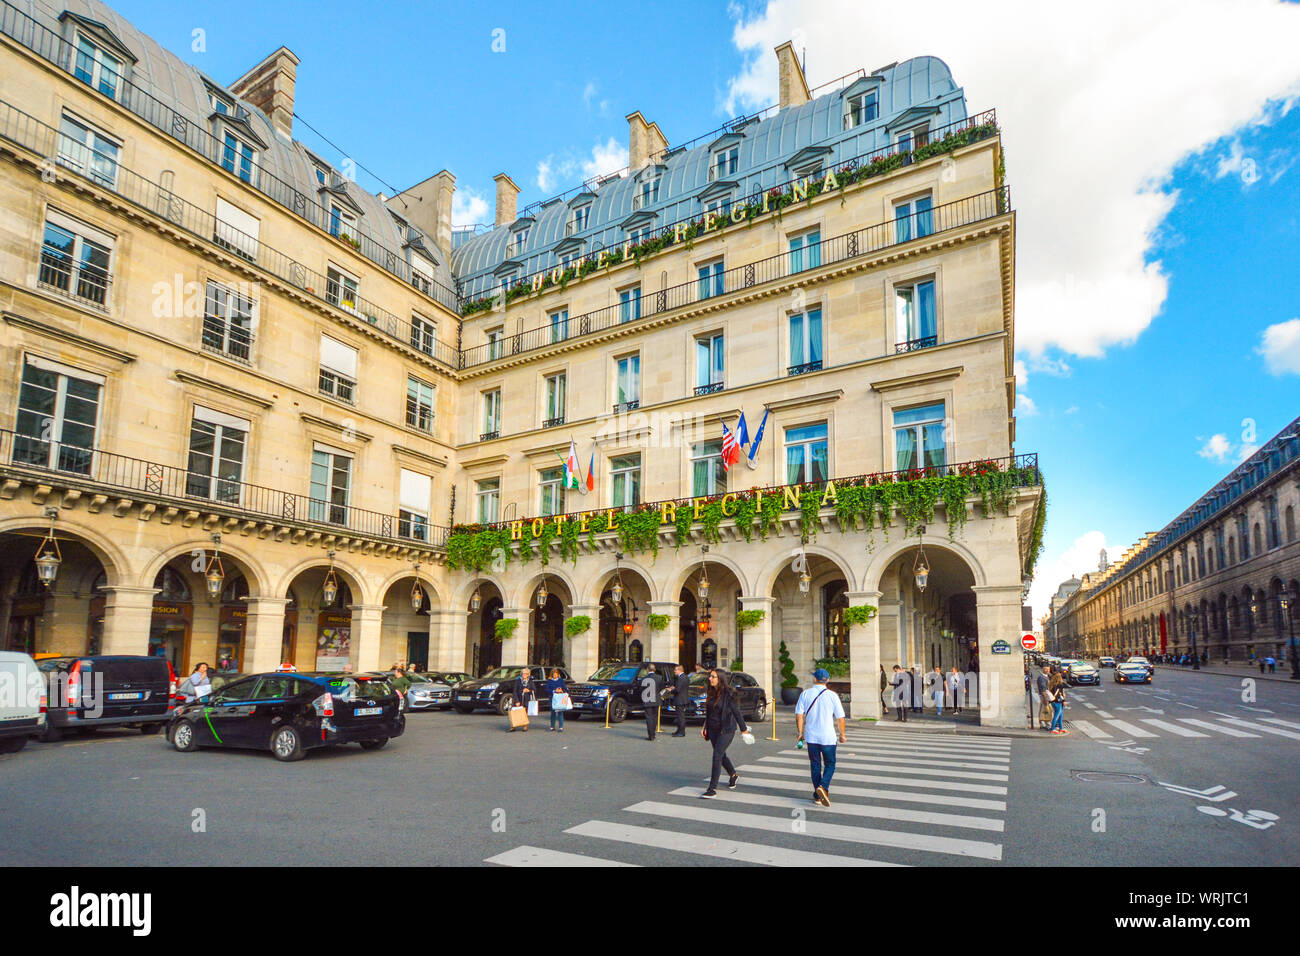 Cars park in the Place des Pyramides as tourists and pedestrians cross the intersection in front of a luxury hotel on Rue du Rivoli Stock Photo